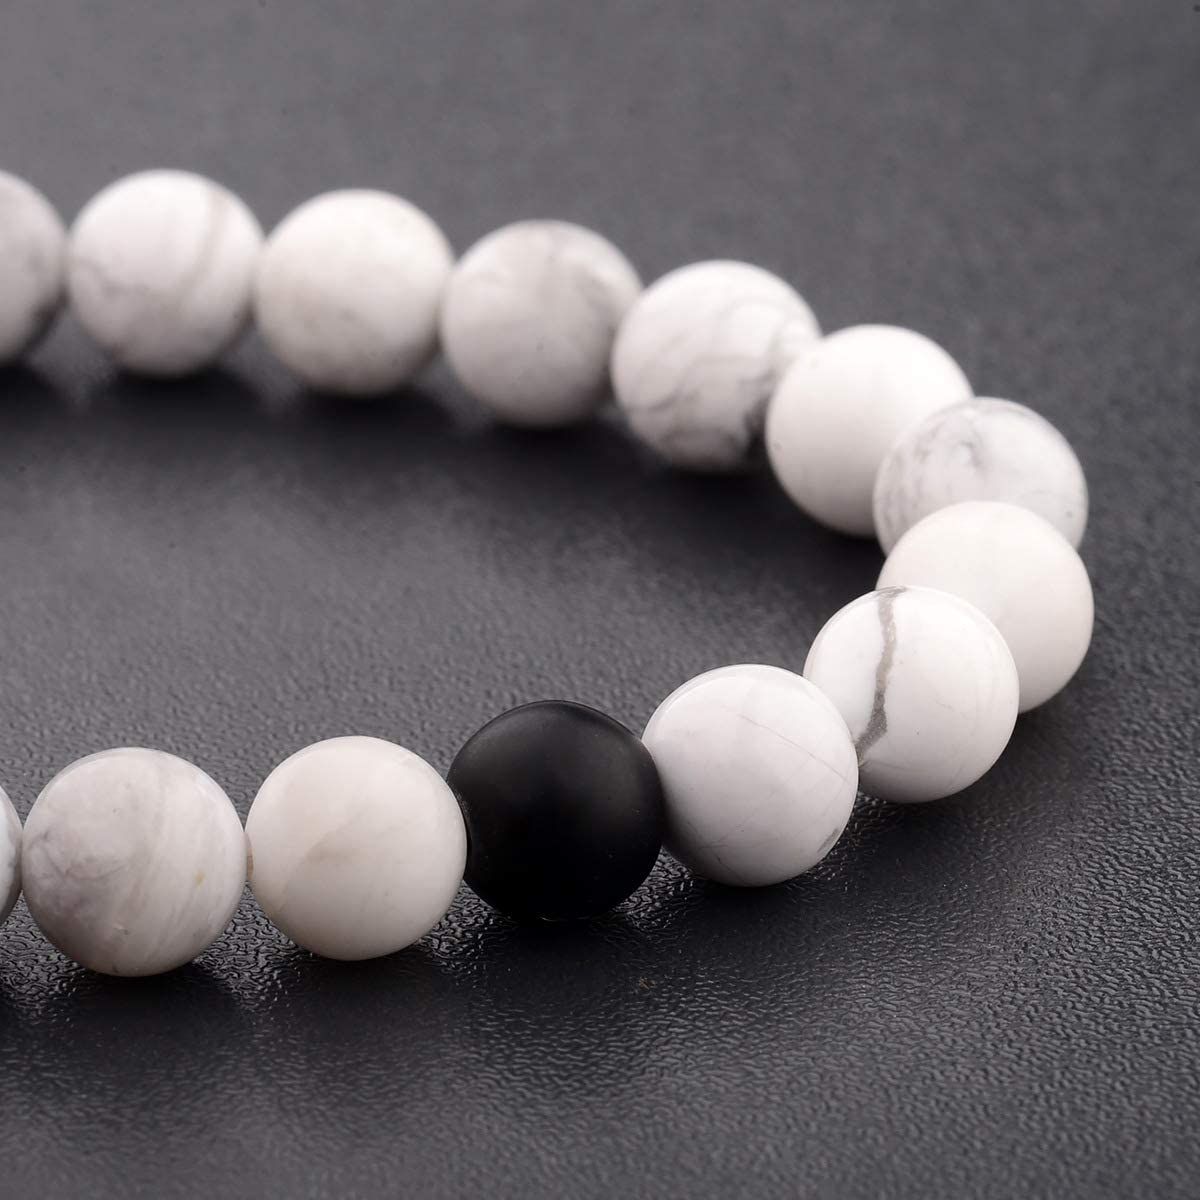 CNLQ Distance Bracelets for Lovers Couples Matching Gift Matte Agate 8mm Bead Stone